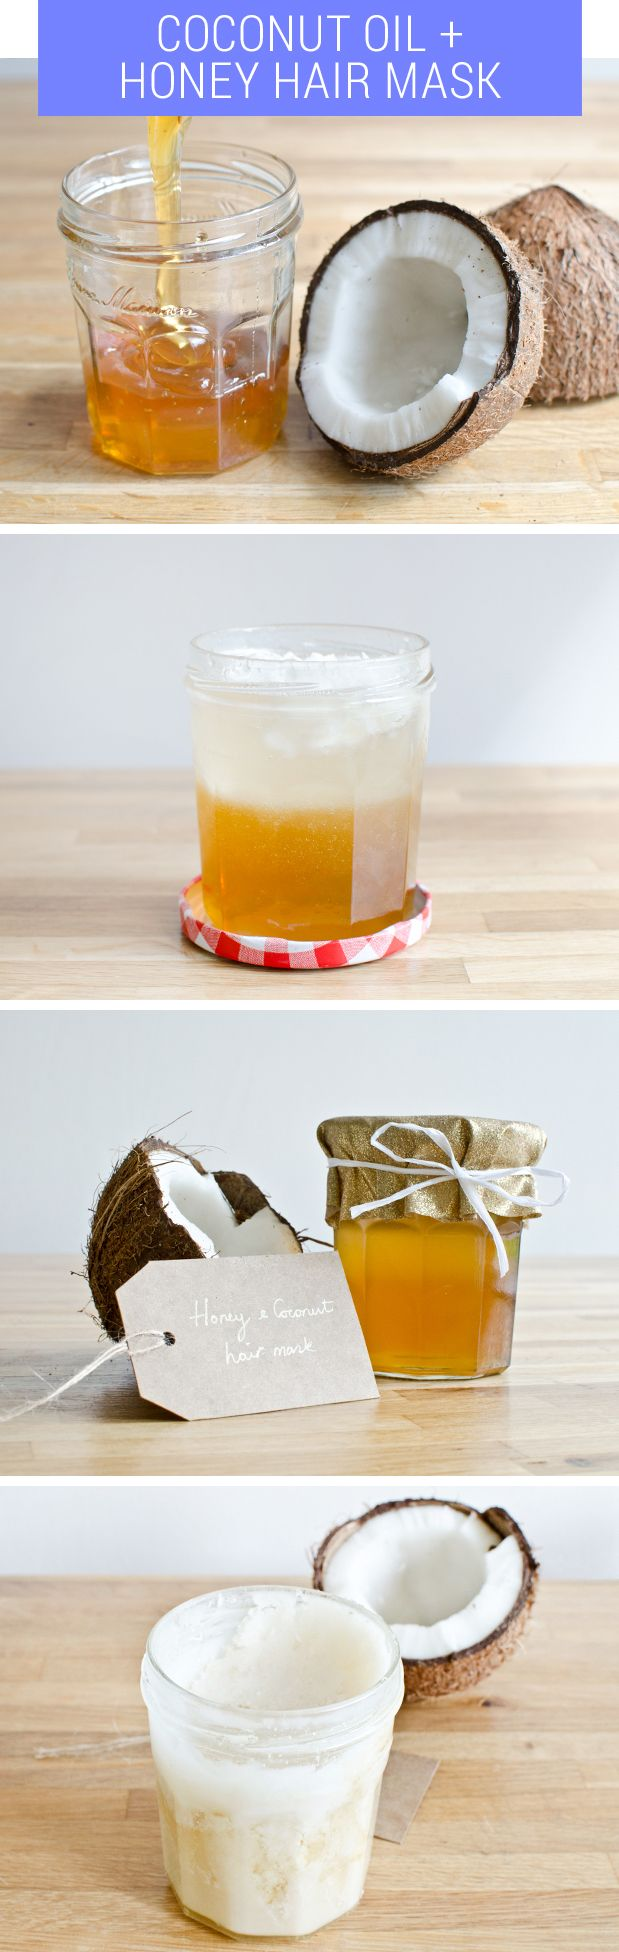 16 DIY Coconut and Honey Hair Mask